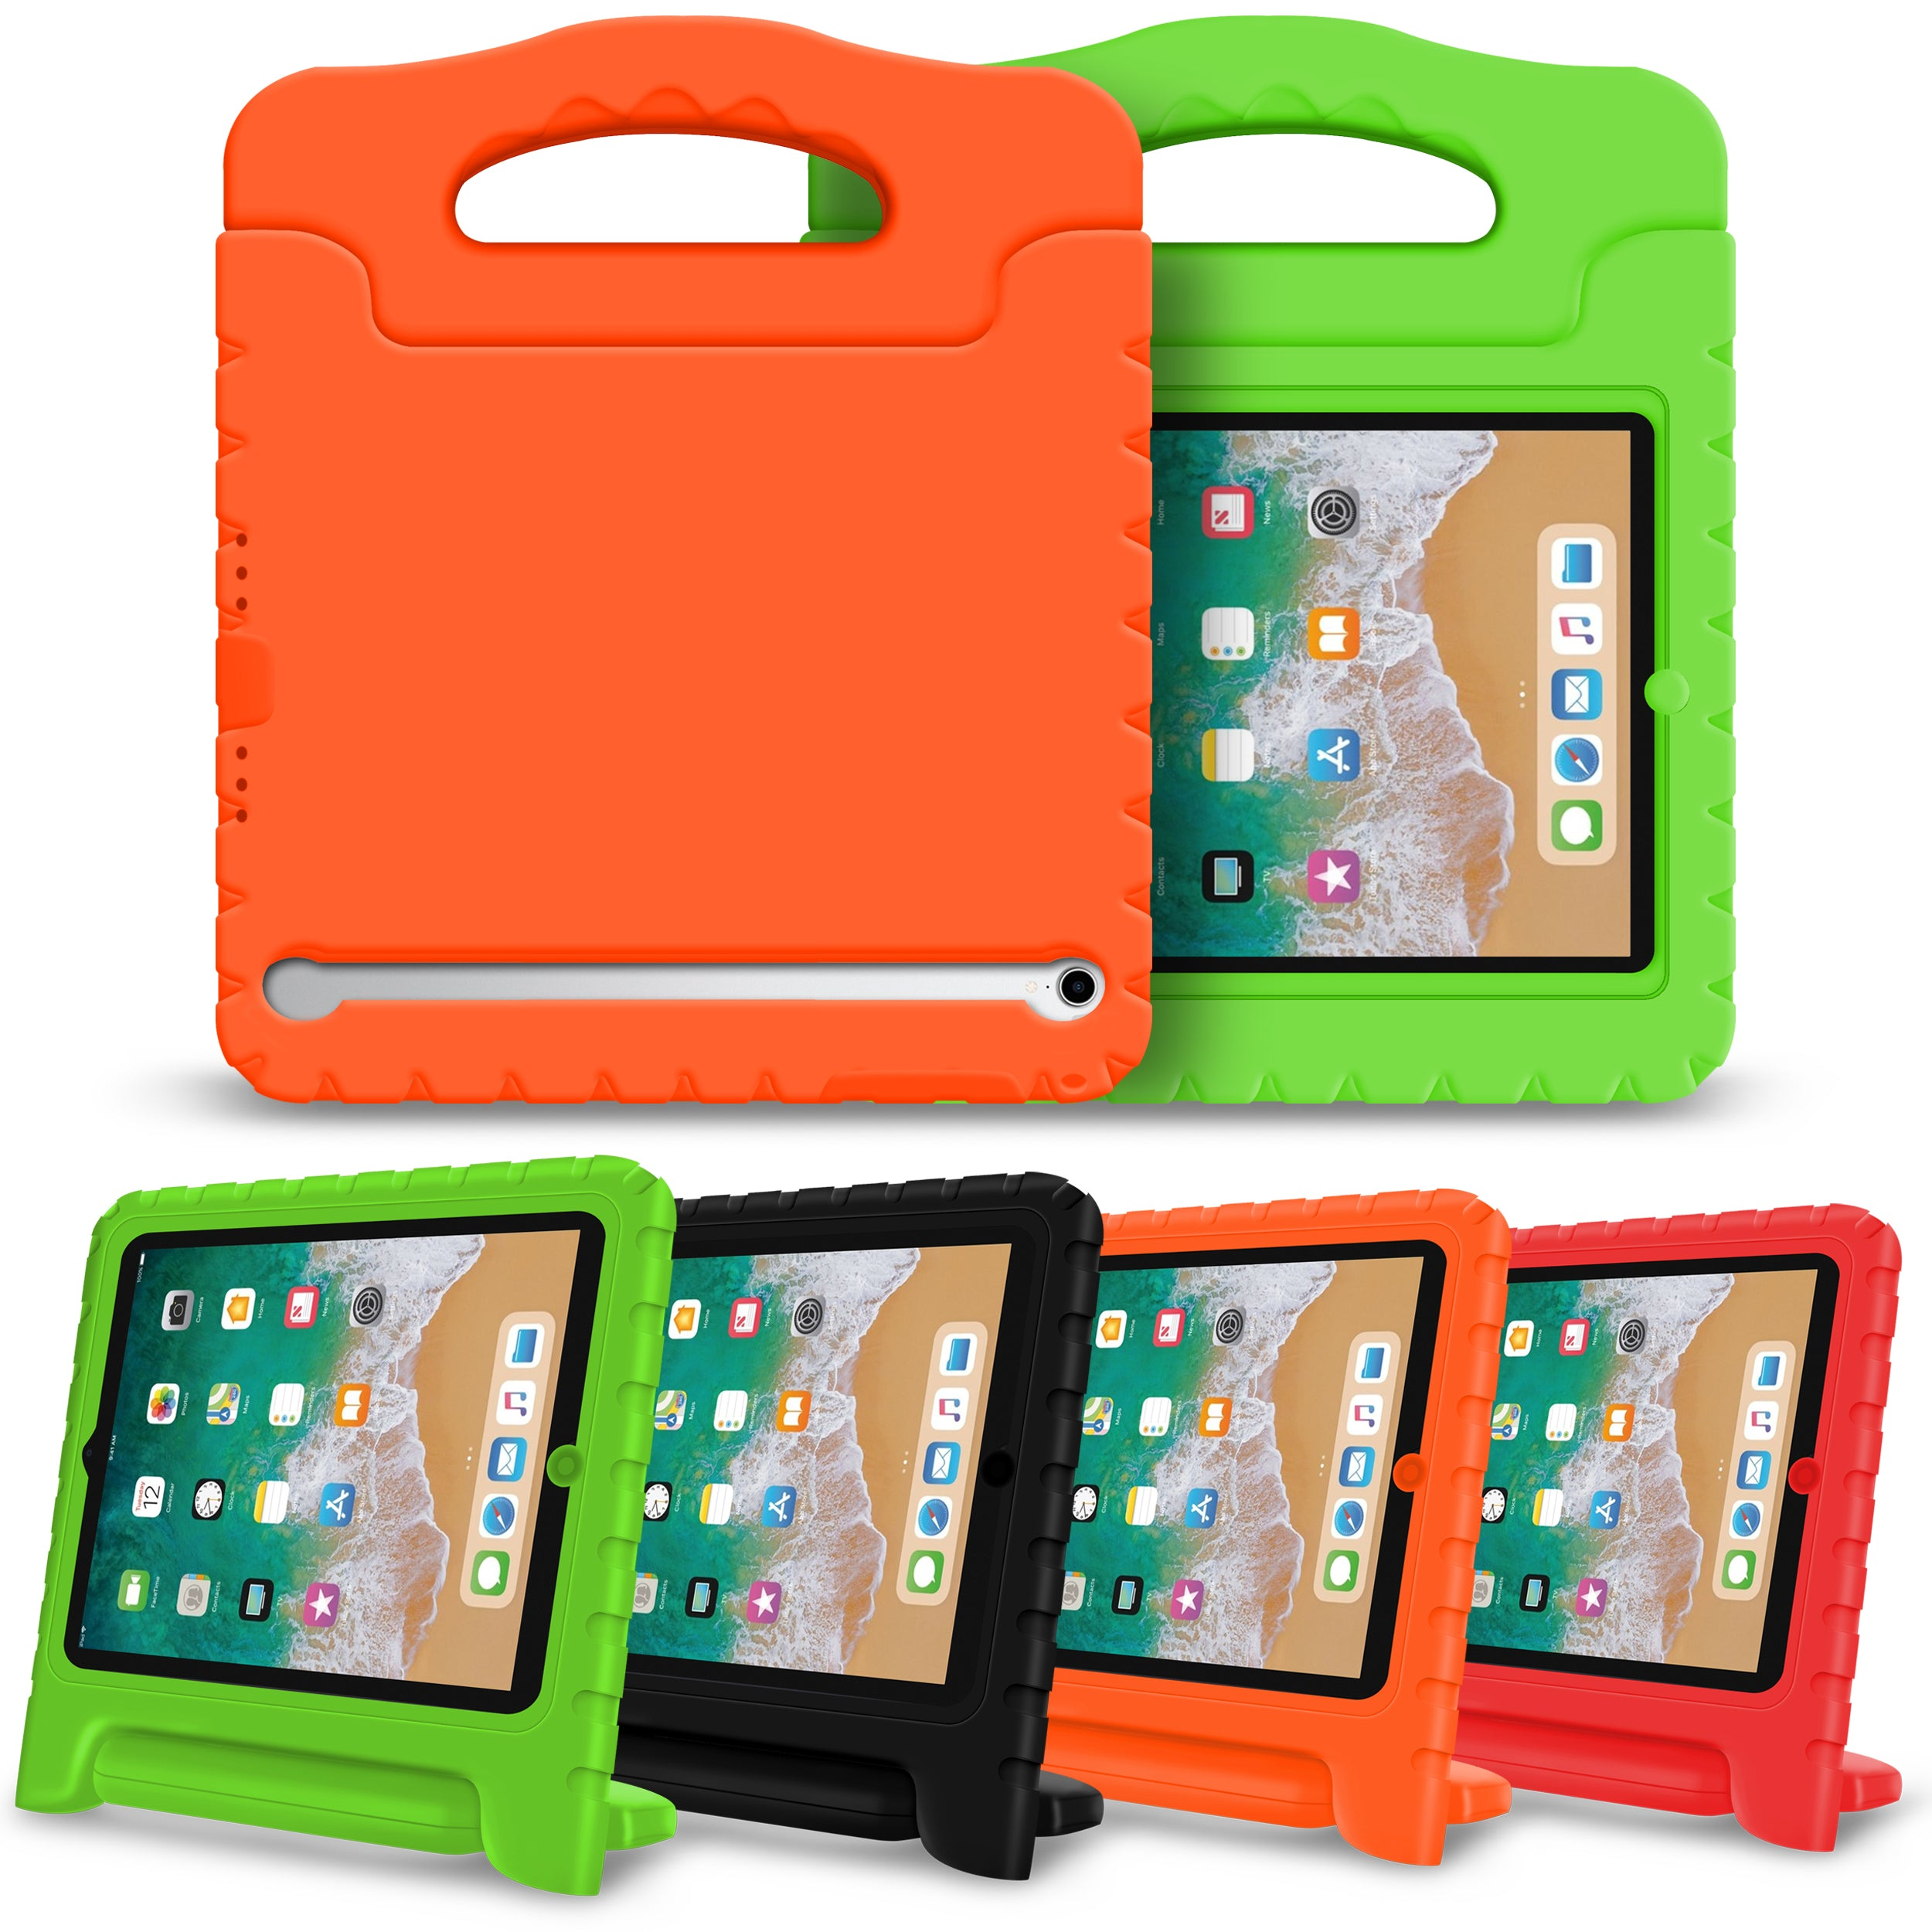 is your kid's iPad Case Safe? How to Protect your Children's iPad's?